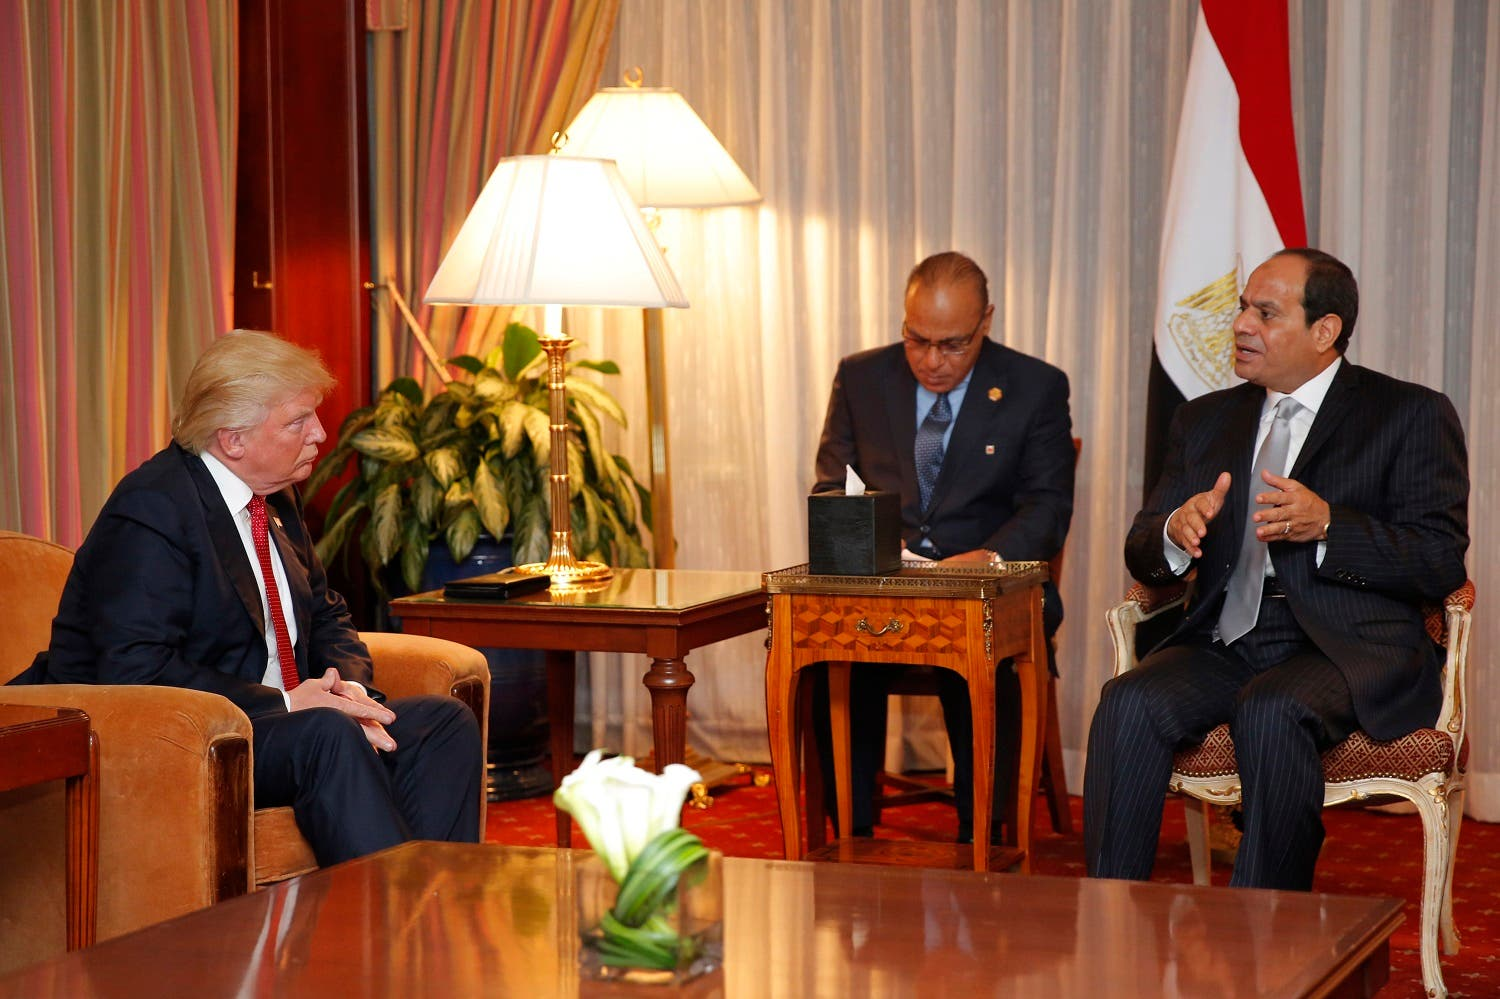 Presidential-Elect Donald Trump looks on as Egyptian President Abdel Fattah el-Sisi speaks during their meeting in September. (AFP)